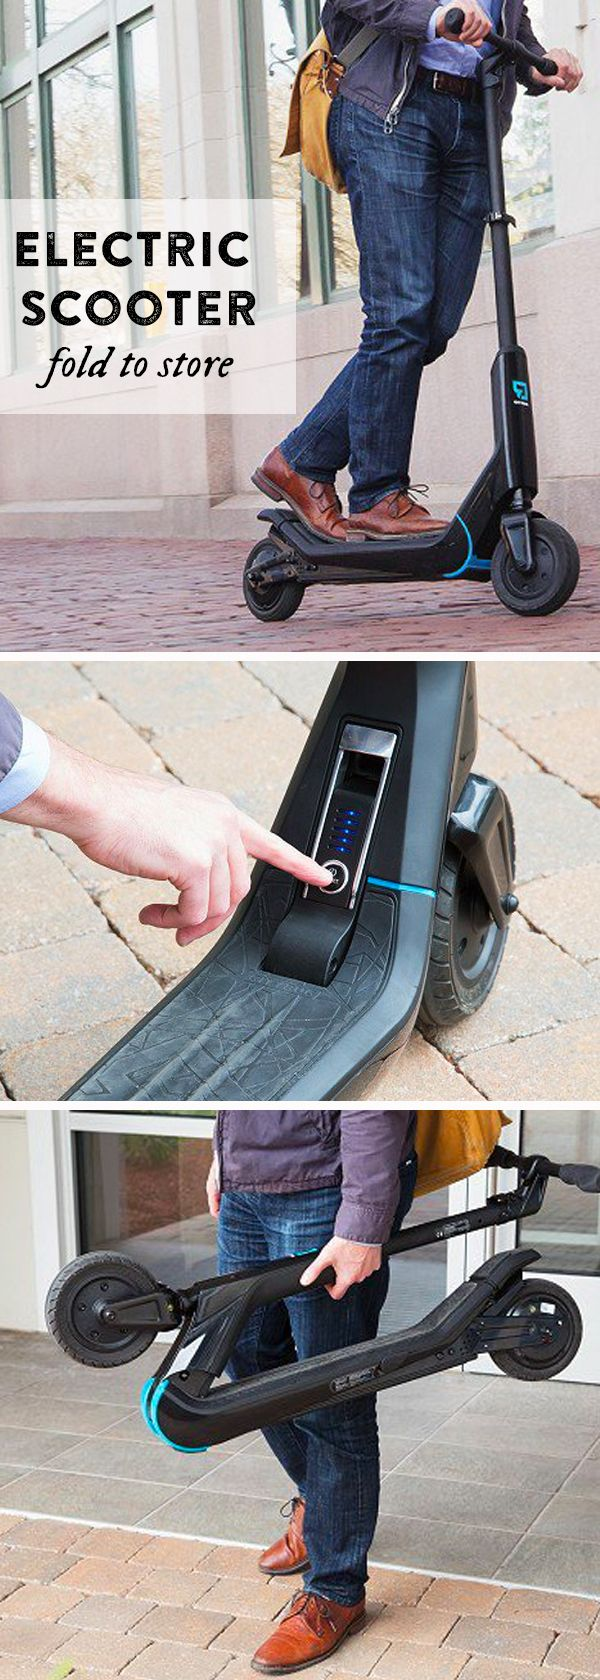 No emissions, no noise, and easy push-pull technology make this scooter a fun way to commute. When you reach your destination, fold it up to store.